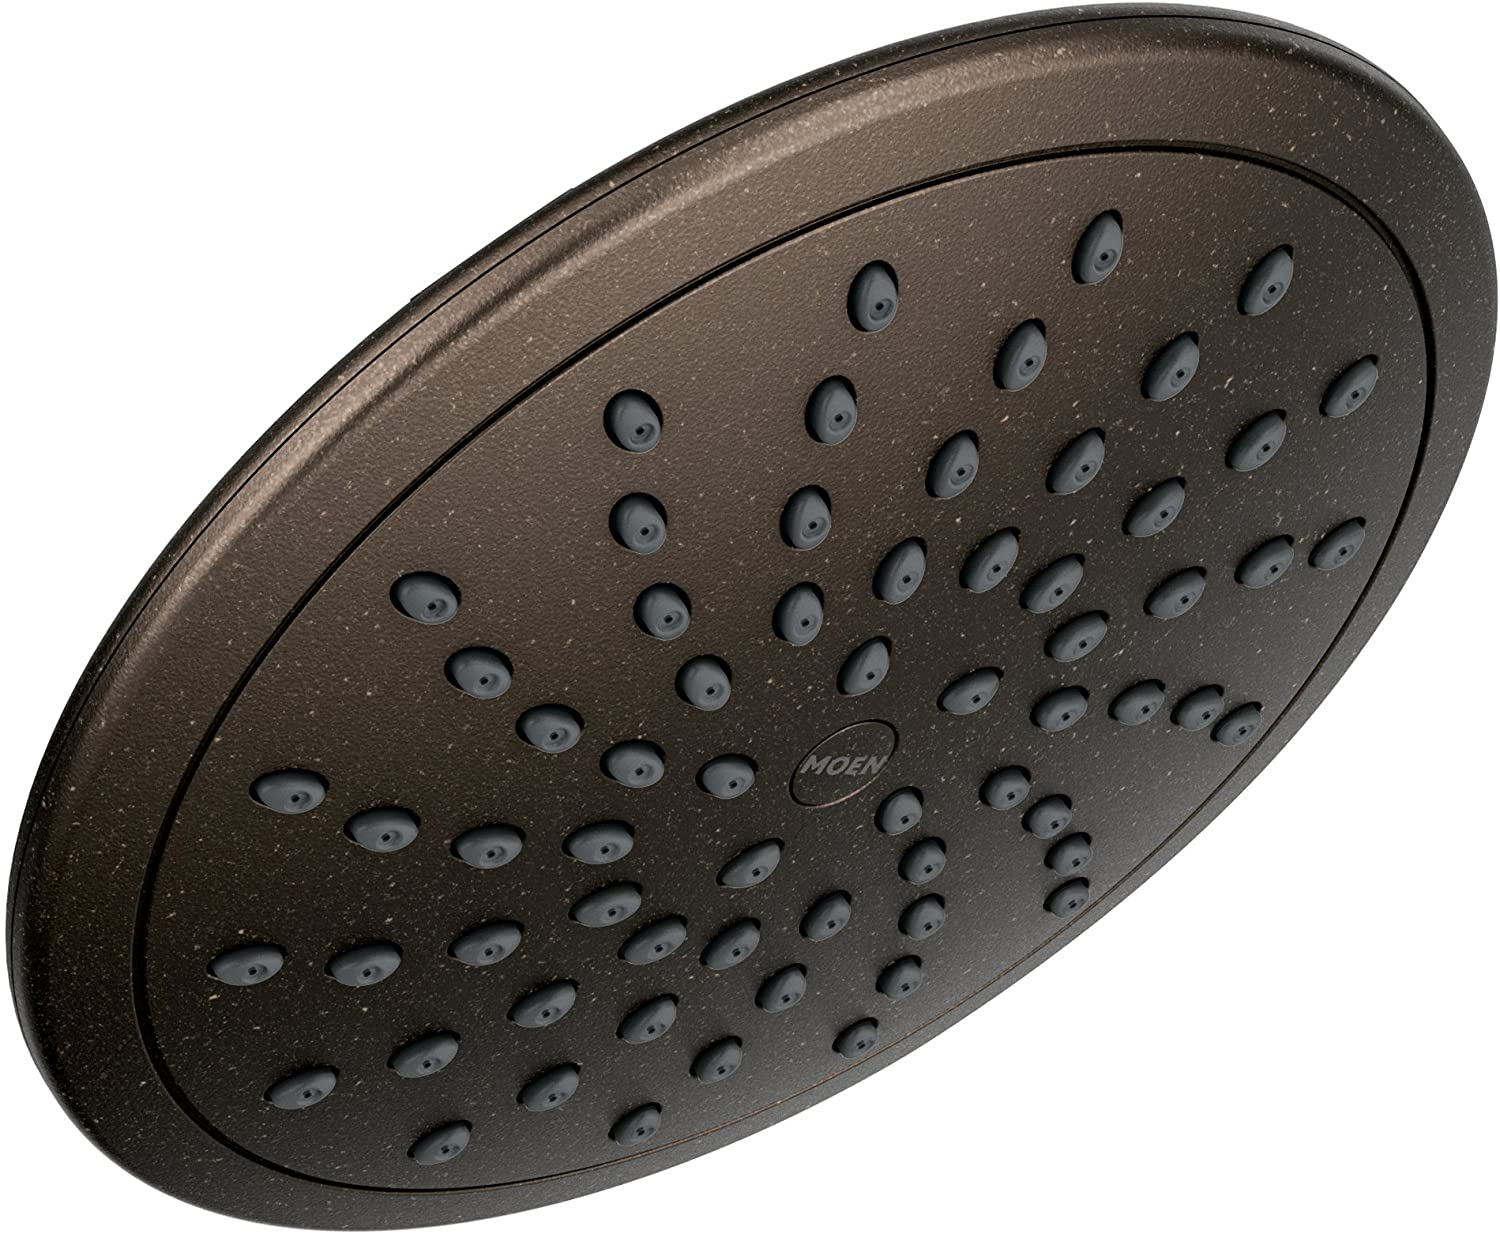 Moen 6345ORB Collection 8-Inch Fixed Rainshower Showerhead, Oil Rubbed Bronze